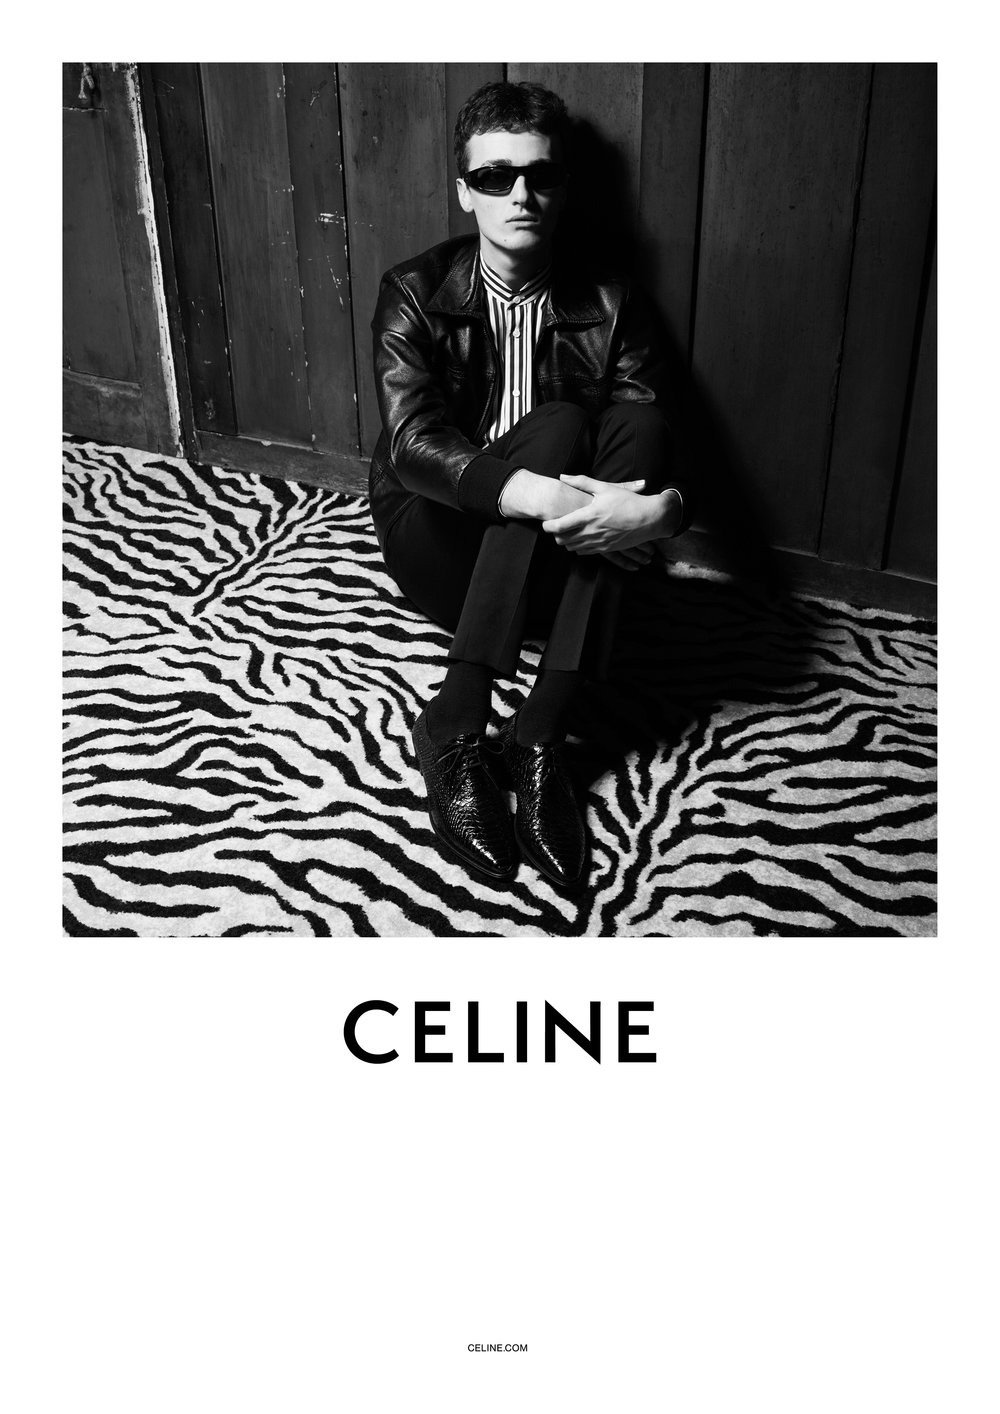 CELINE_SUMMER19_MEN_PART2_PRESS_BTBOnline_Behind_The_Blinds_Magazine_05.jpg